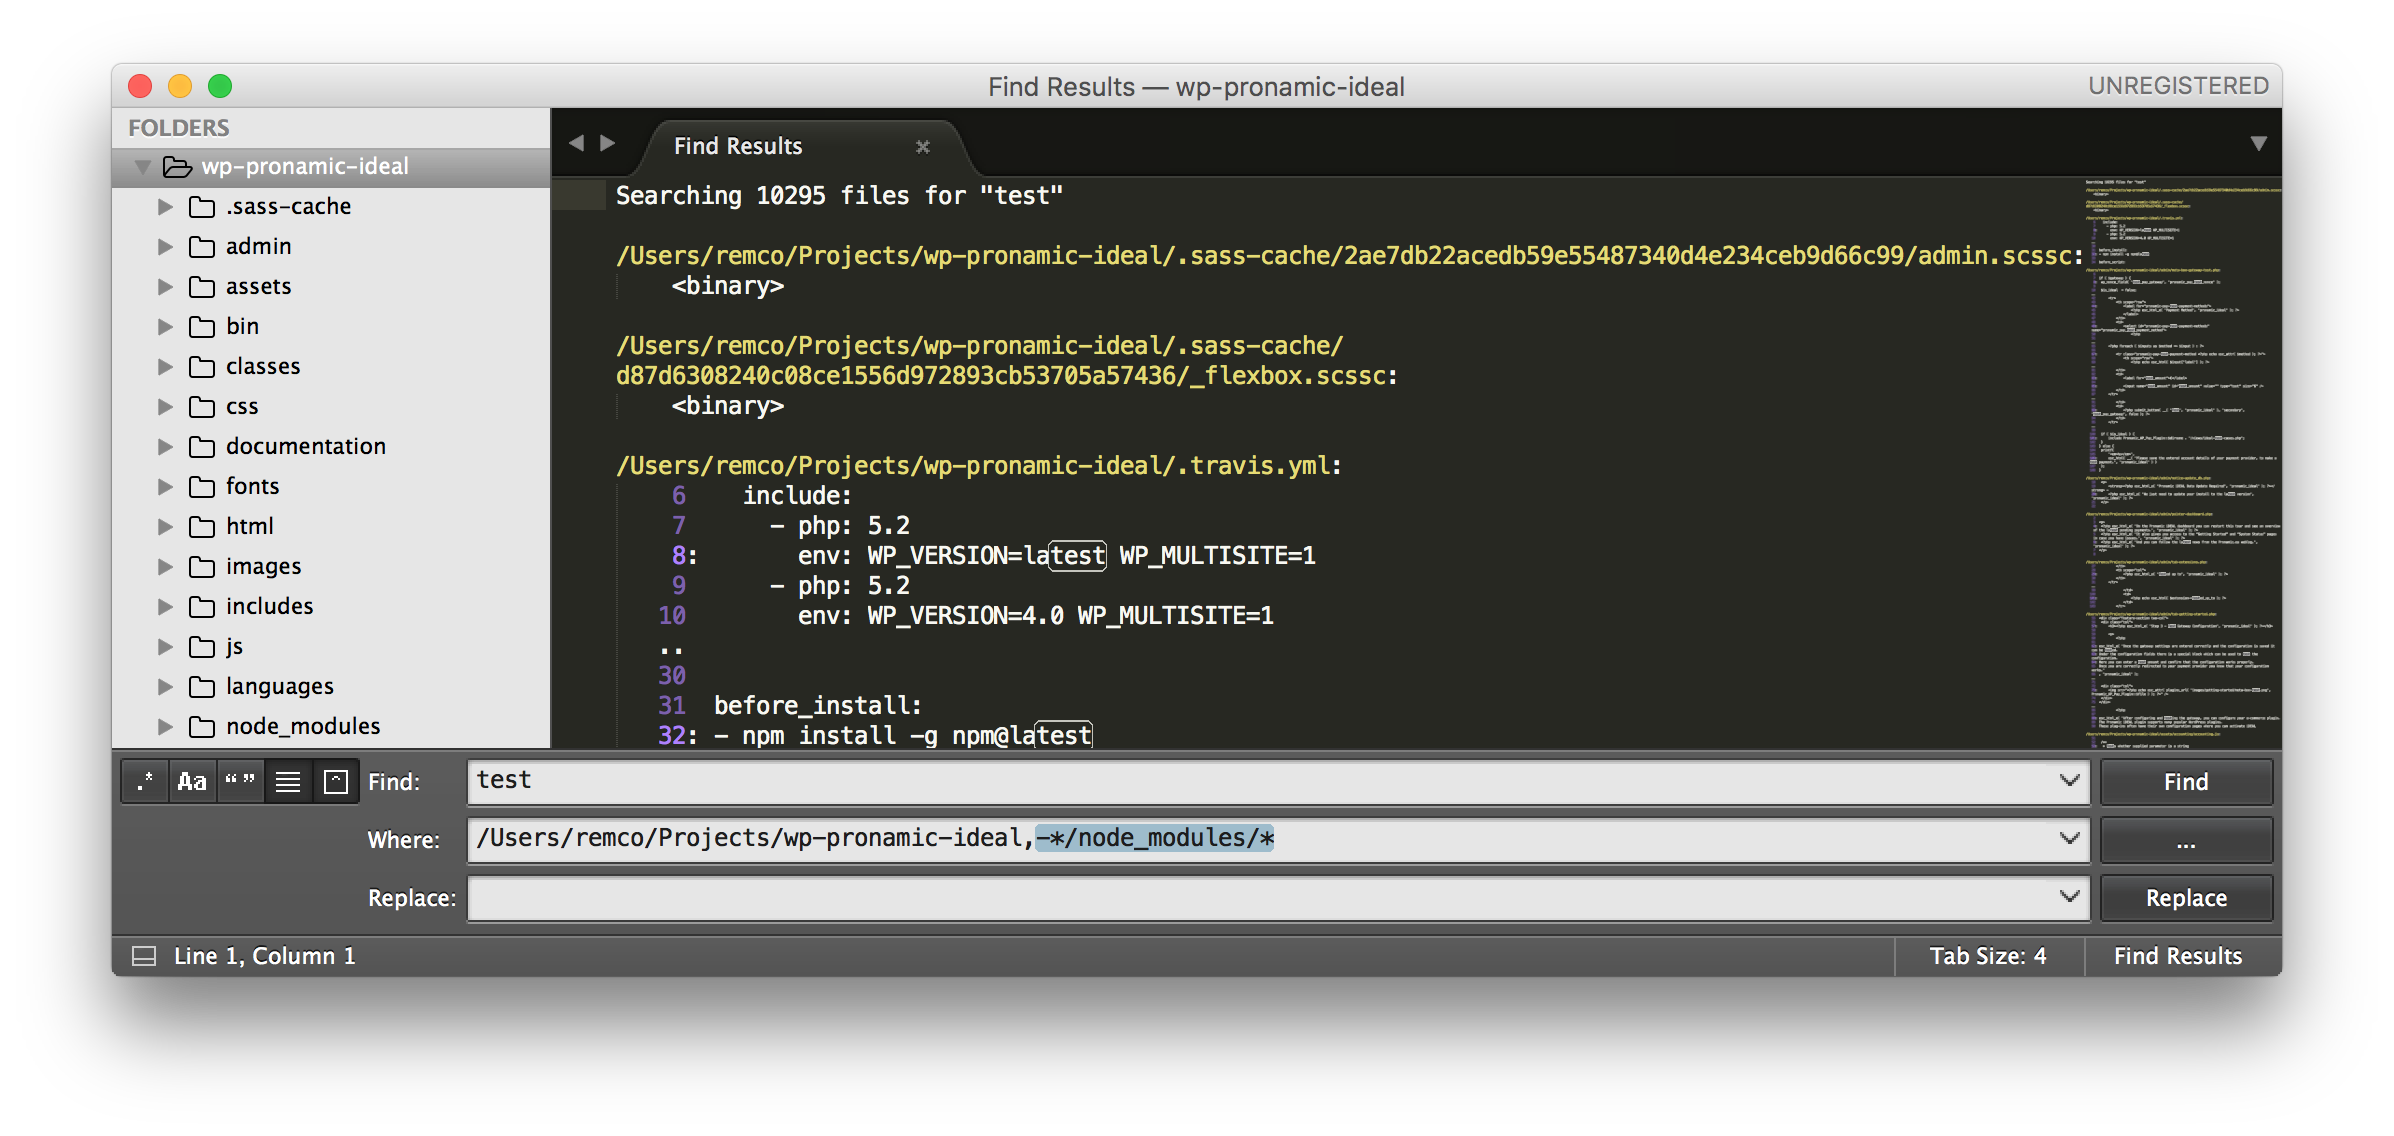 Sublime Text 3 - Finder in Folder - node_modules filter